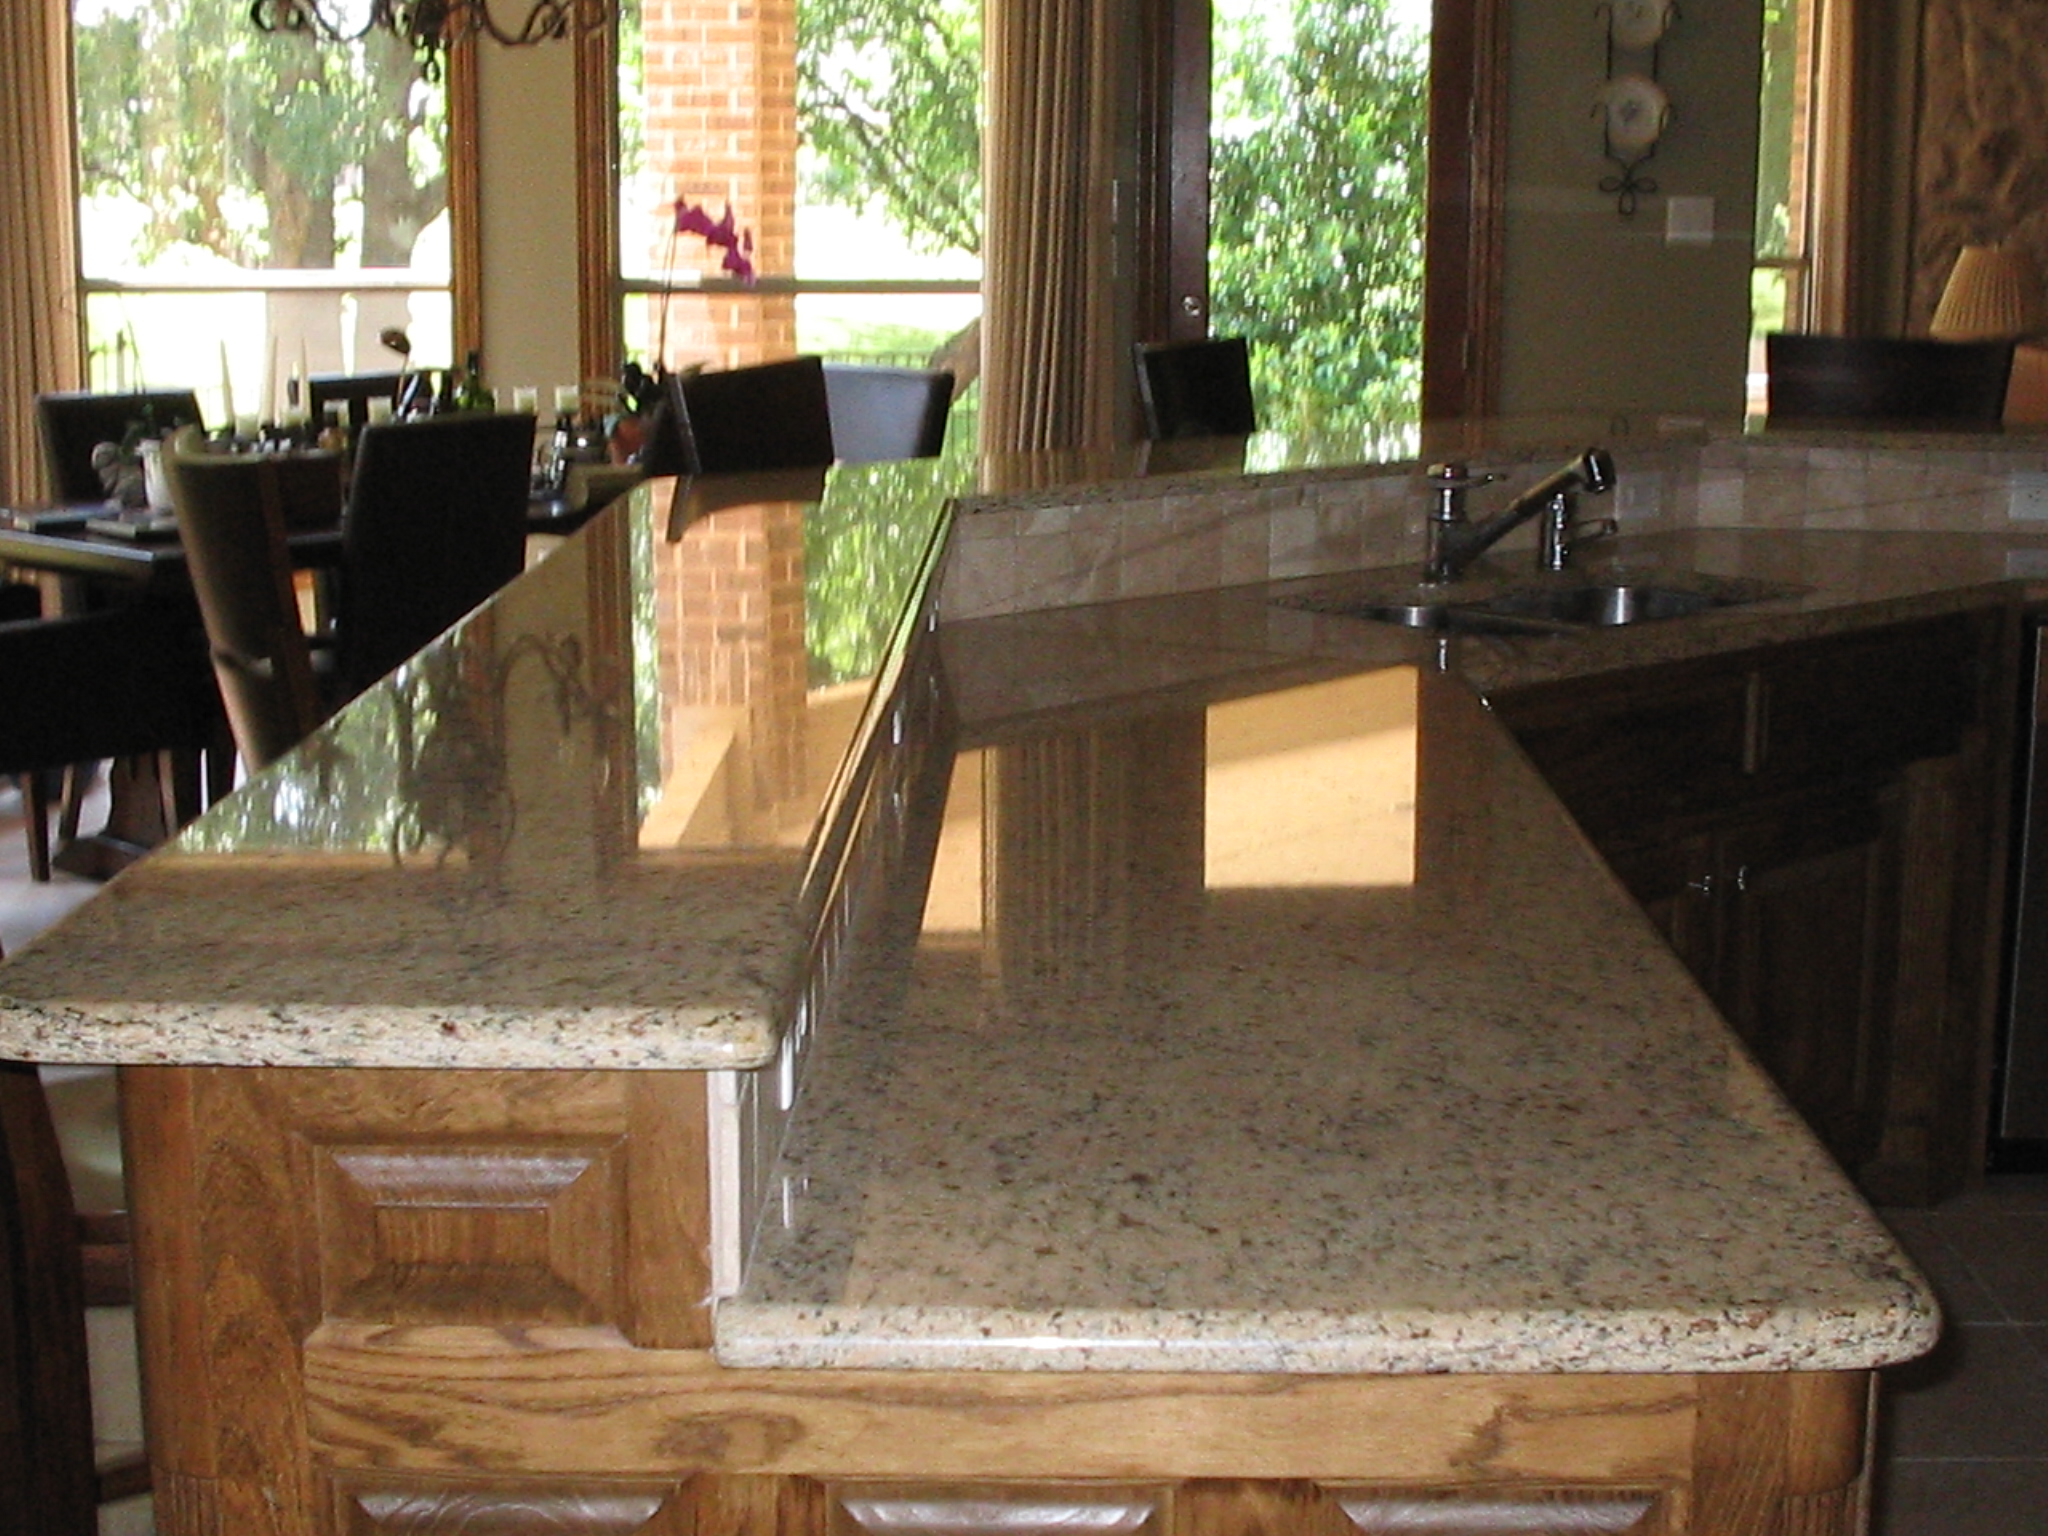 stones saura and granite polish countertops v countertop sealing sale for seal ideas good dutt